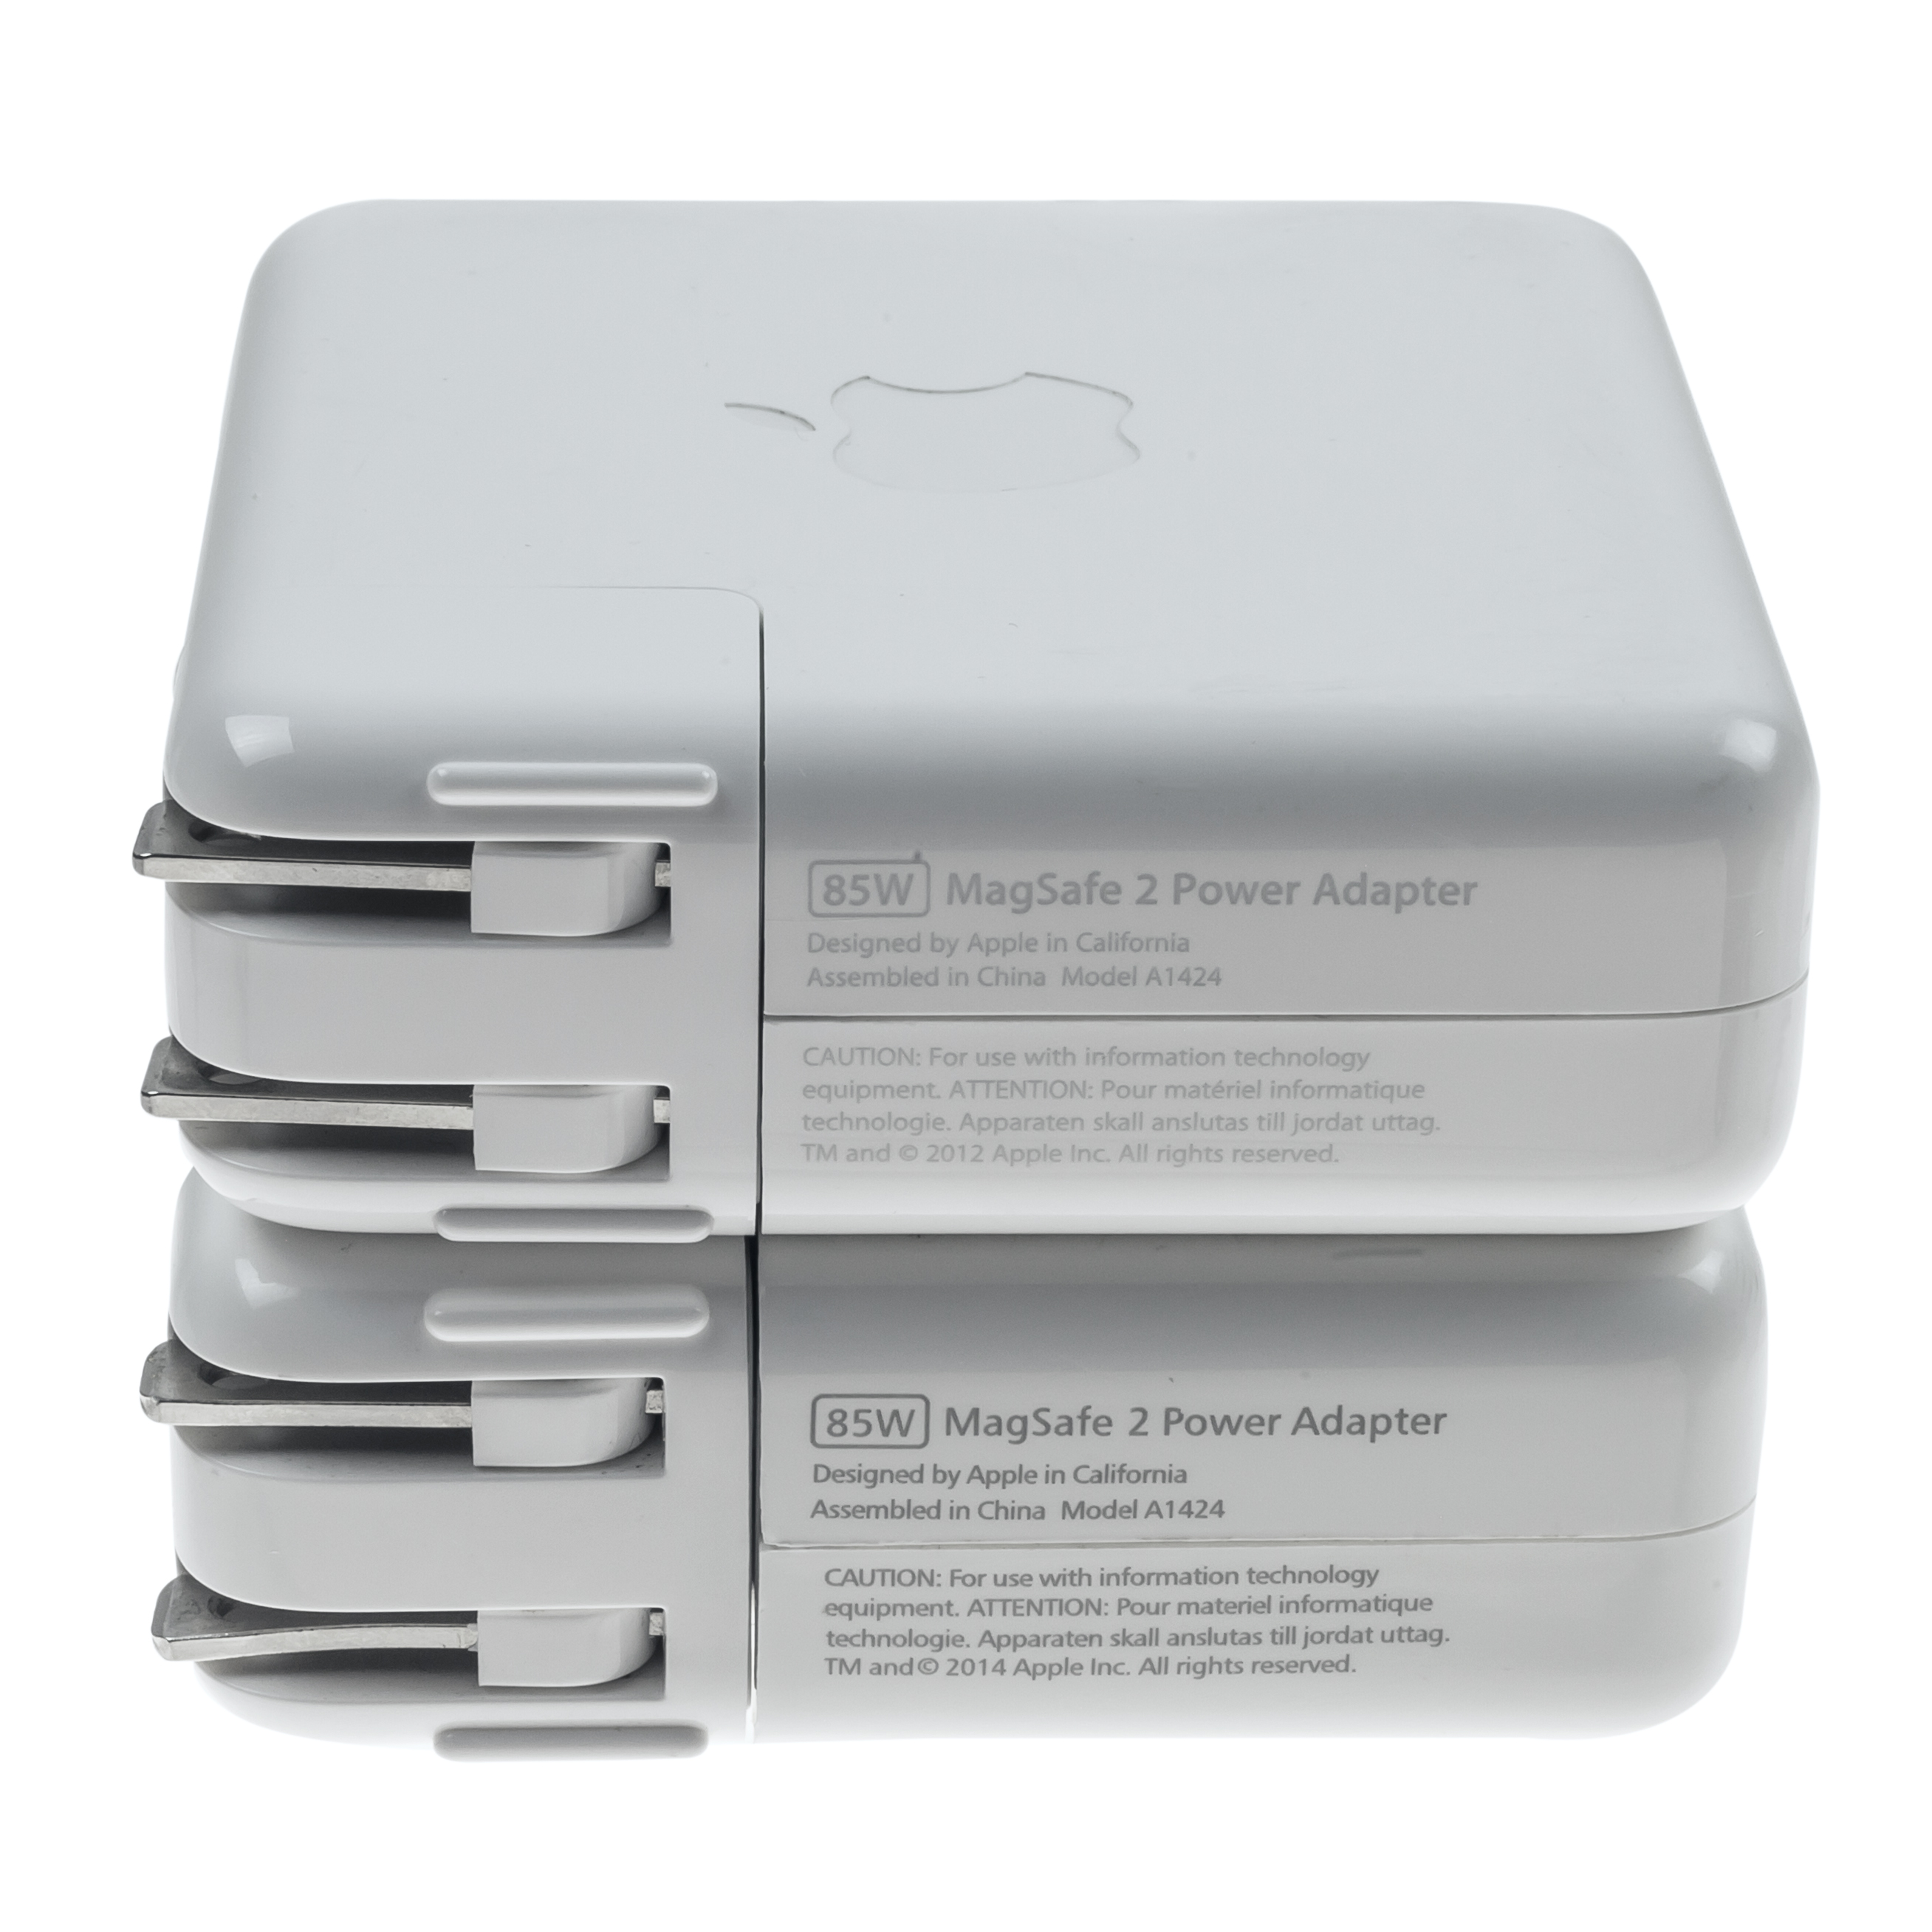 Oem Magsafe Chargers Vs Cheap Imposters Teardown For Truth Apple 85w A1343 Adapter Charger Macbook Pro 15 Original